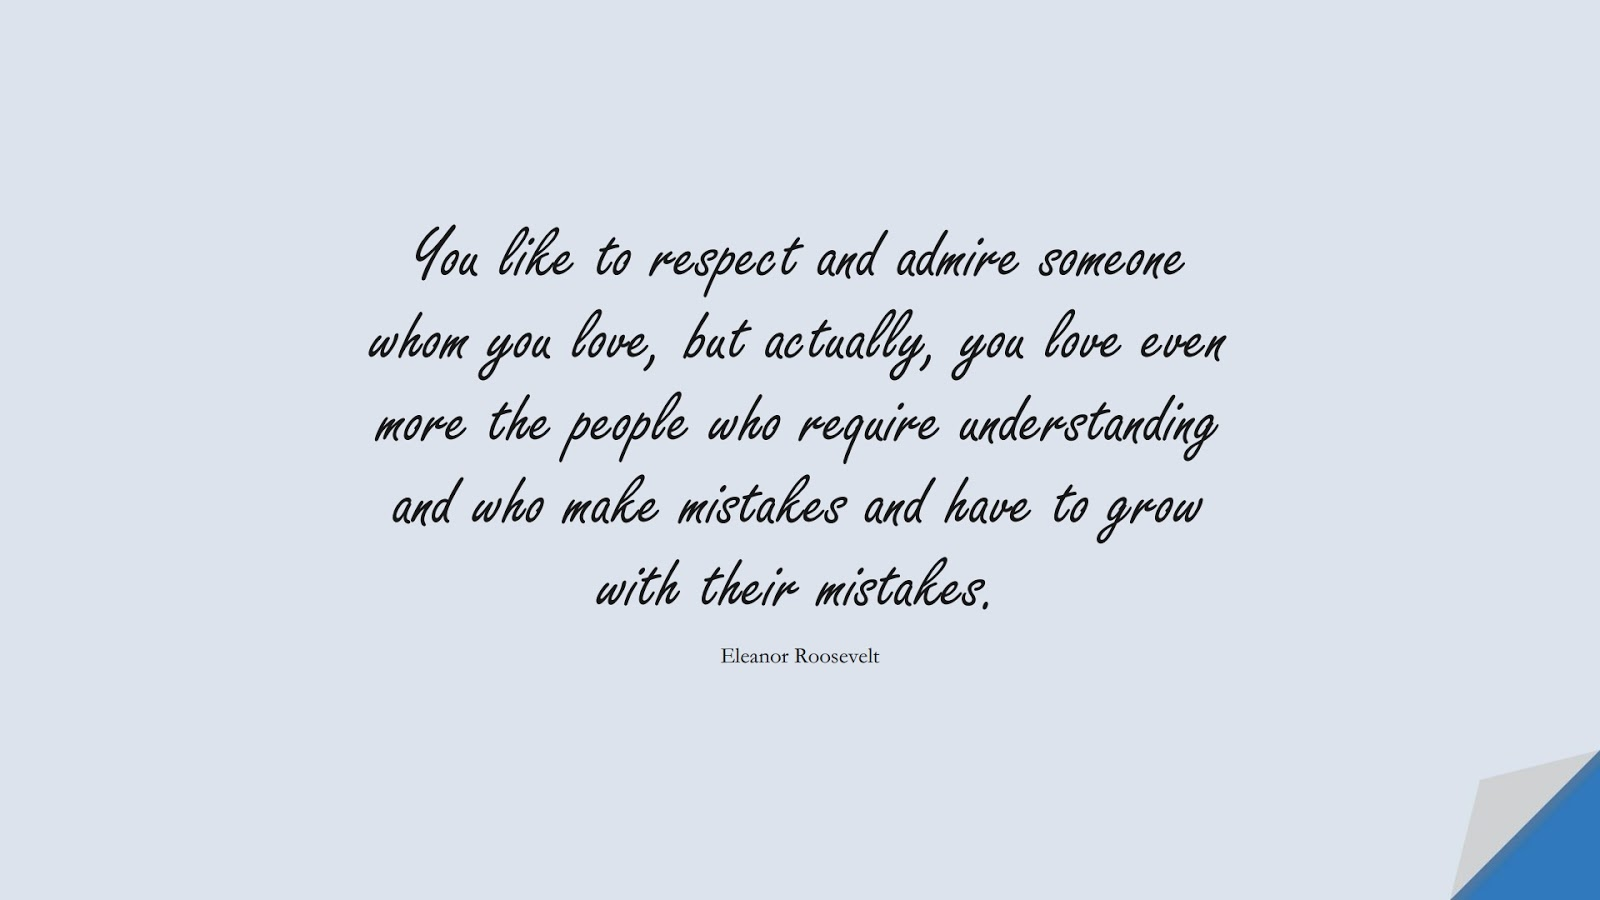 You like to respect and admire someone whom you love, but actually, you love even more the people who require understanding and who make mistakes and have to grow with their mistakes. (Eleanor Roosevelt);  #LoveQuotes